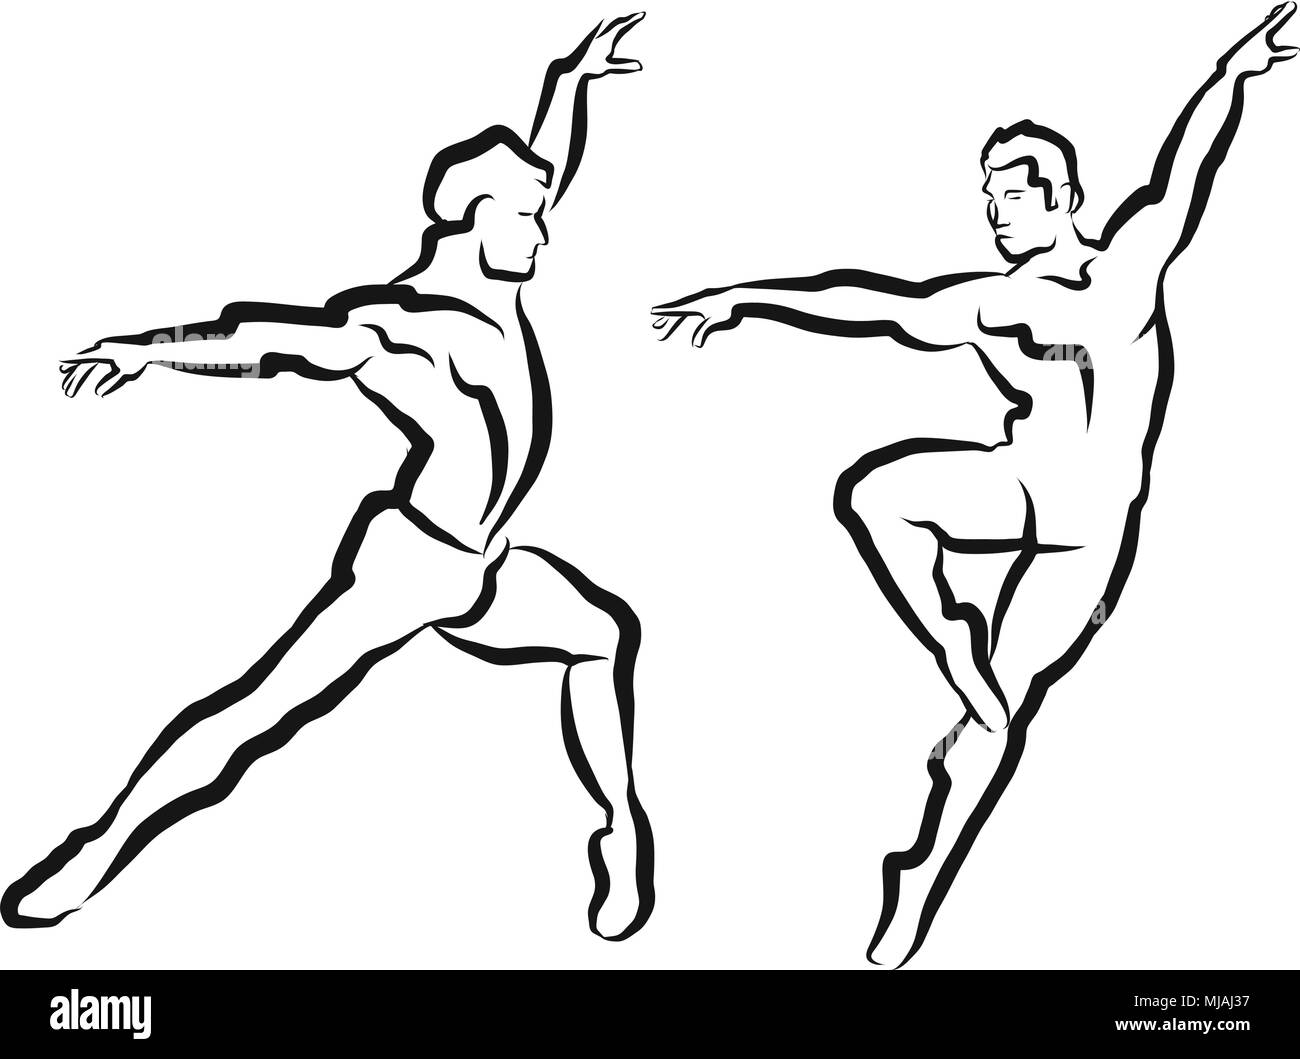 Two Dancer Outline Silhouette Sketch, Vector Hand Made Artwork - Stock Vector